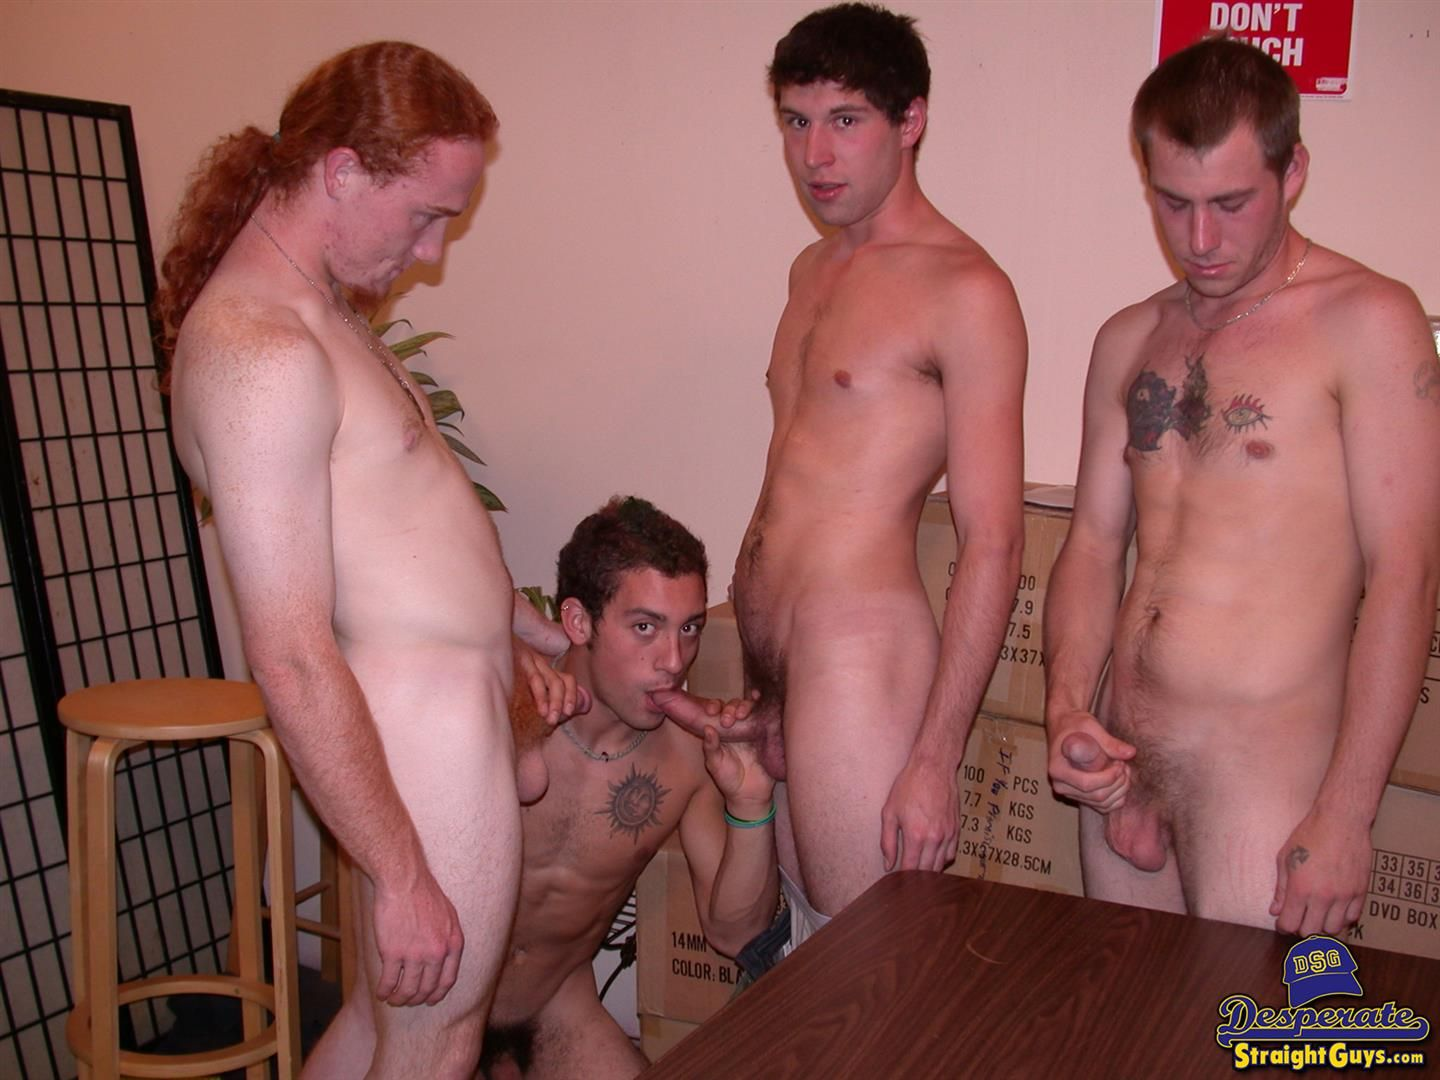 Arizona Porn Cohf straight men who do gay porn - adult images. comments: 2